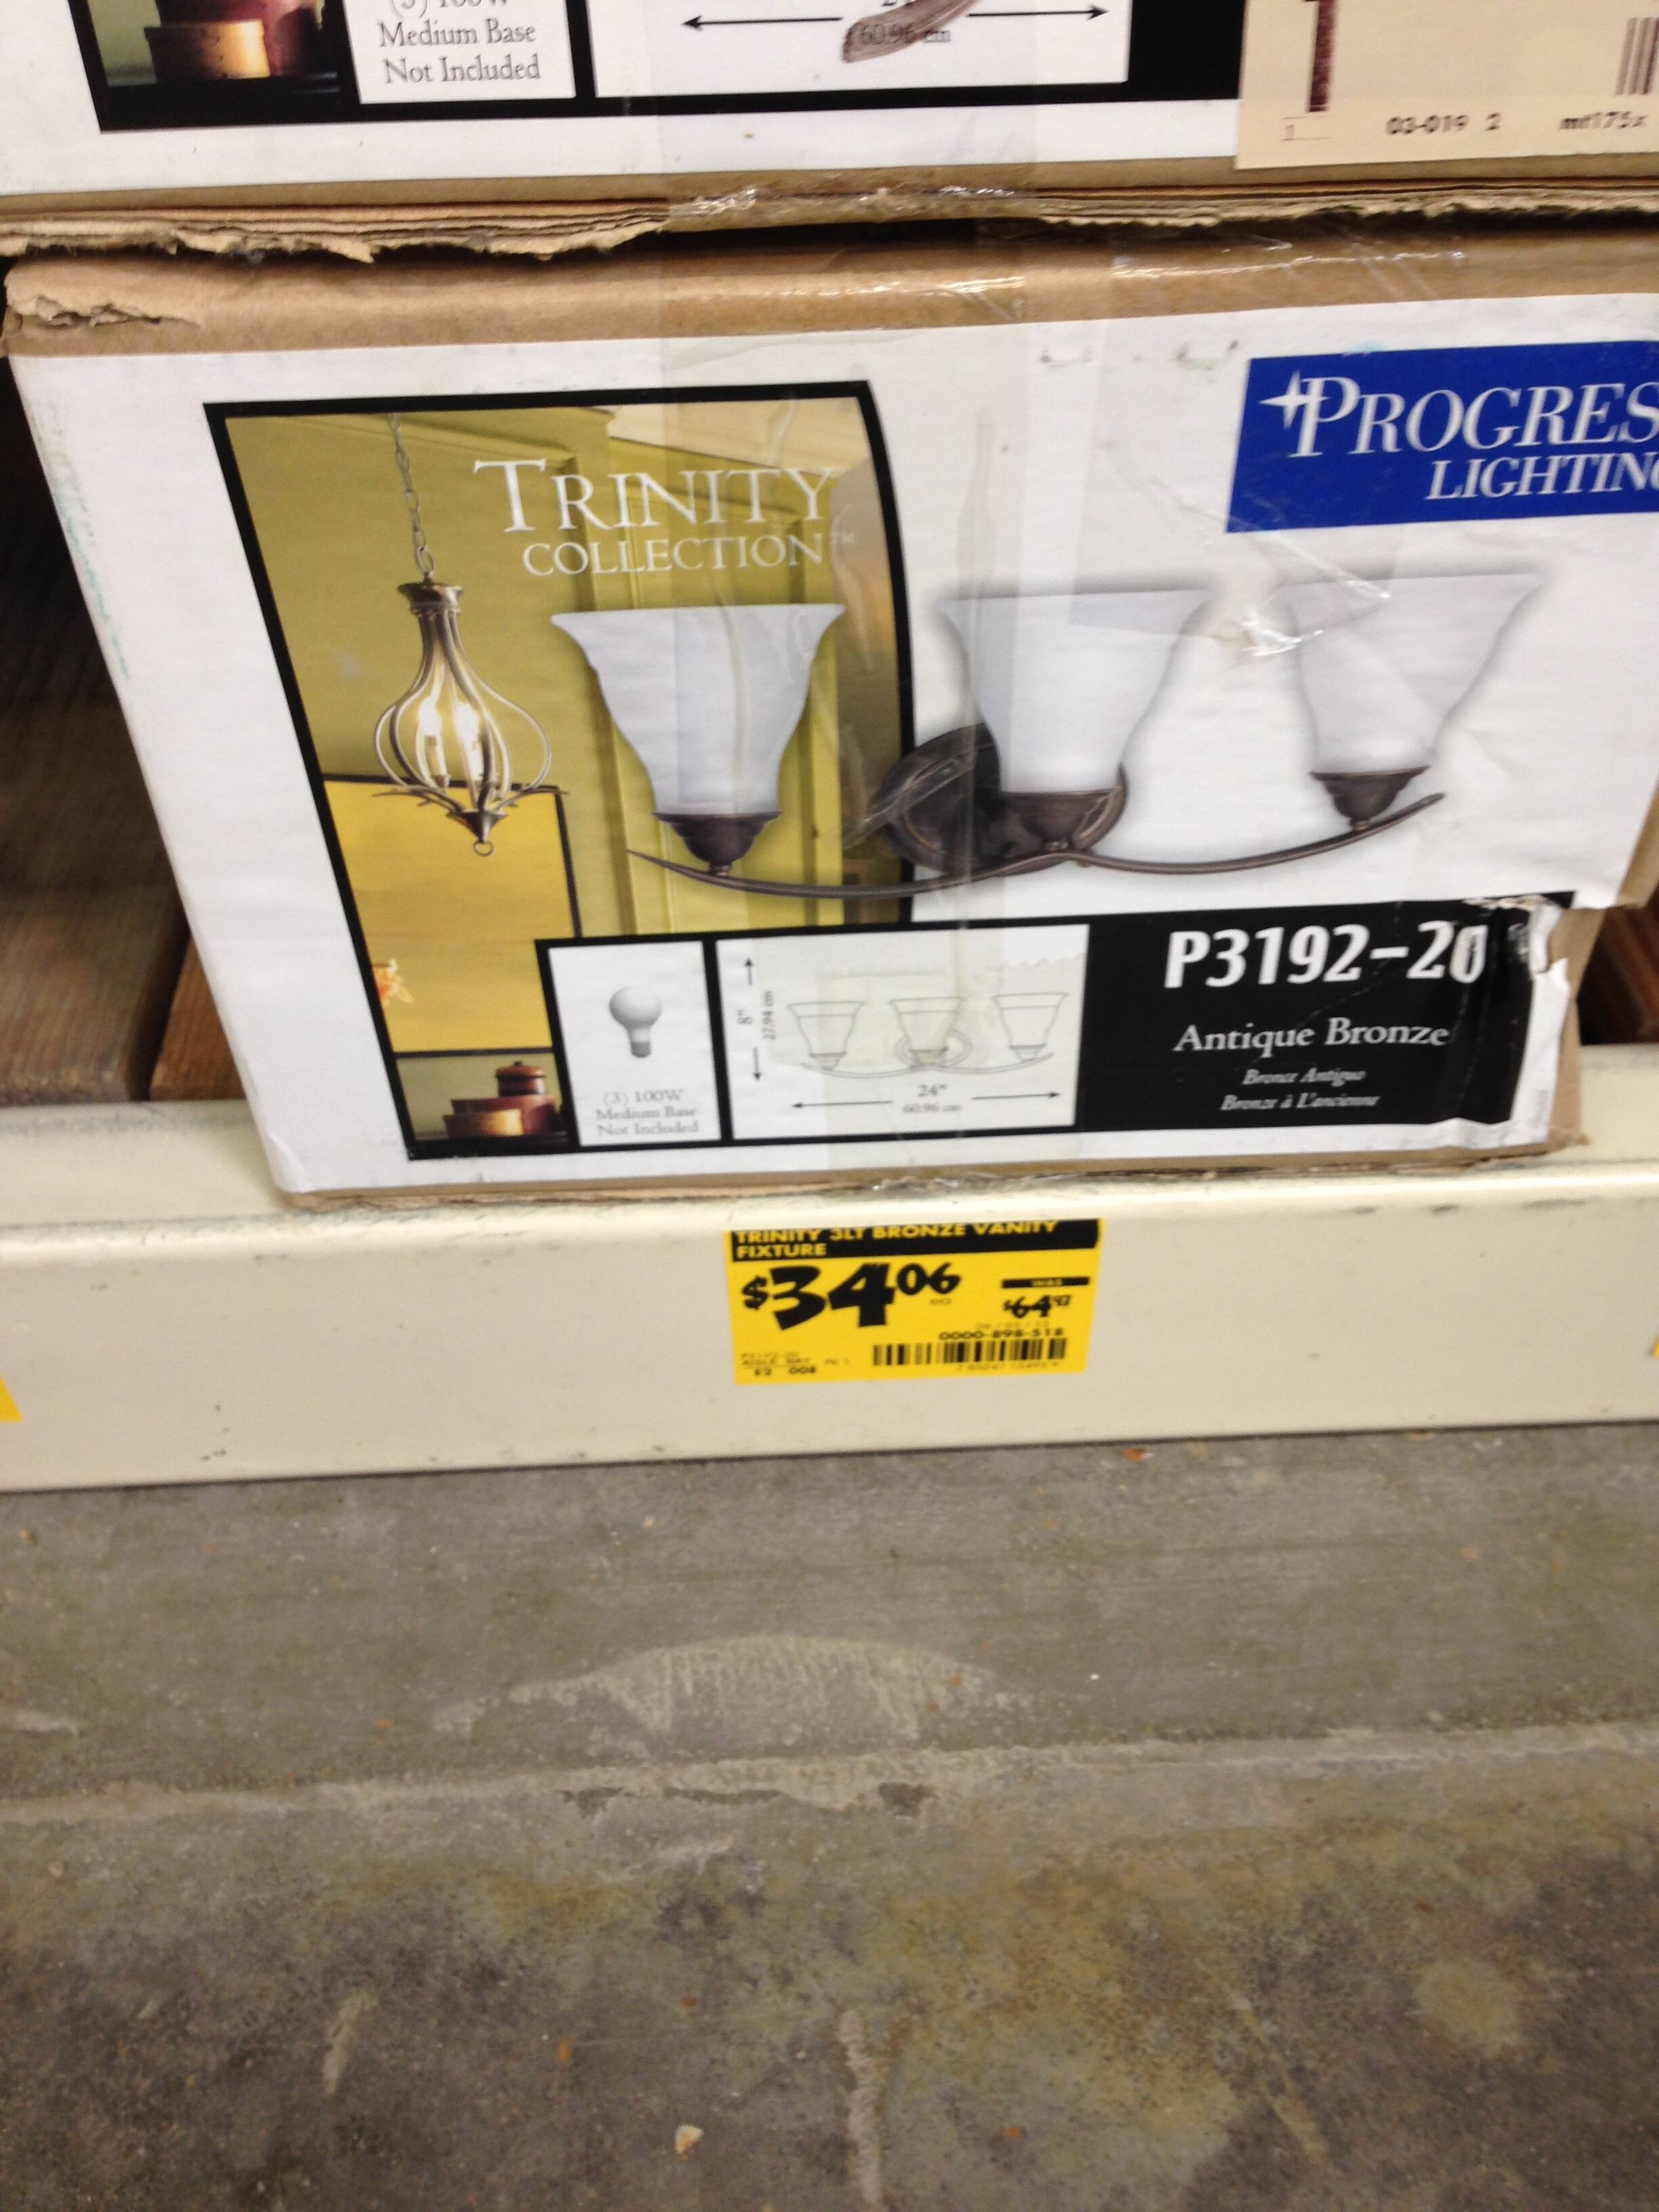 Discuss finds at Home Depot - Page 351 - Slickdeals net